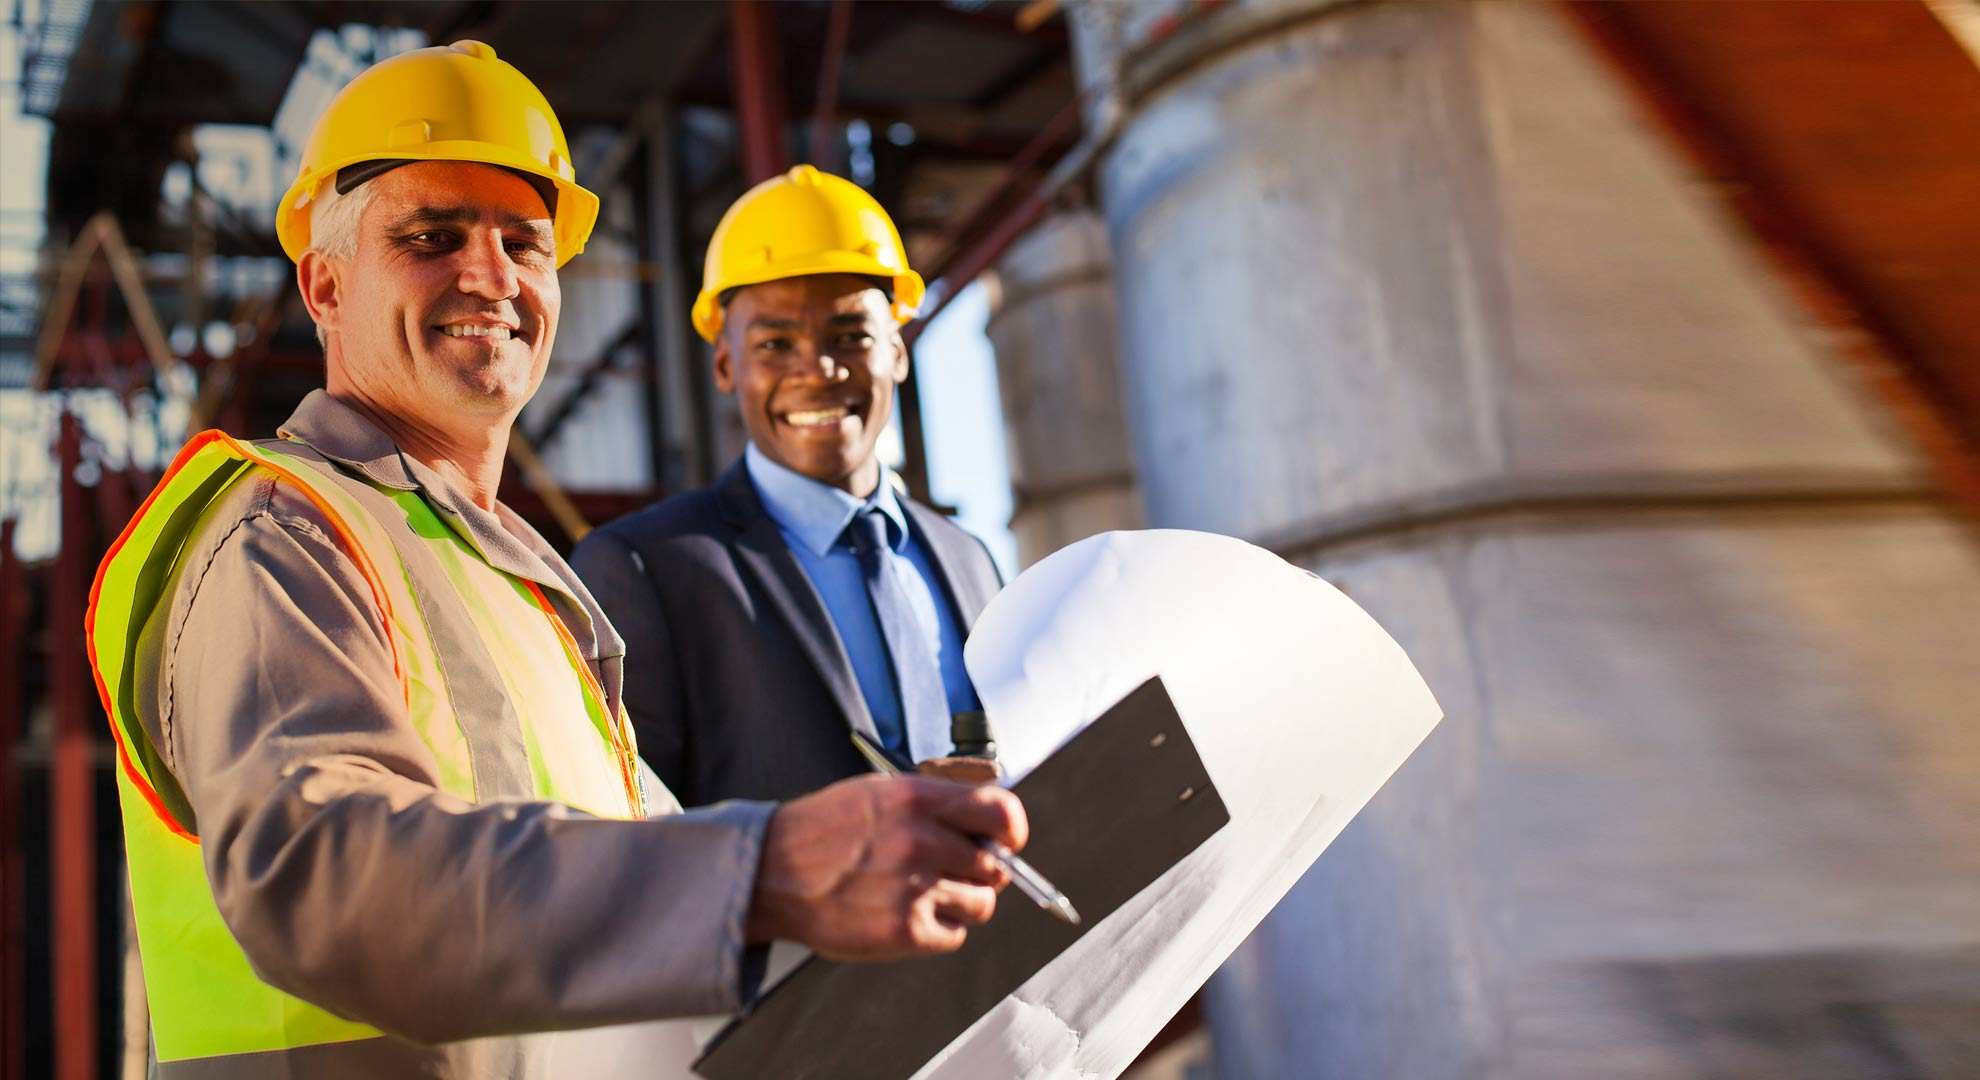 industrial engineering coursework Industrial engineering coursework assignment, project and homework help industrial engineering coursework writing service introduction industrial engineers discover.